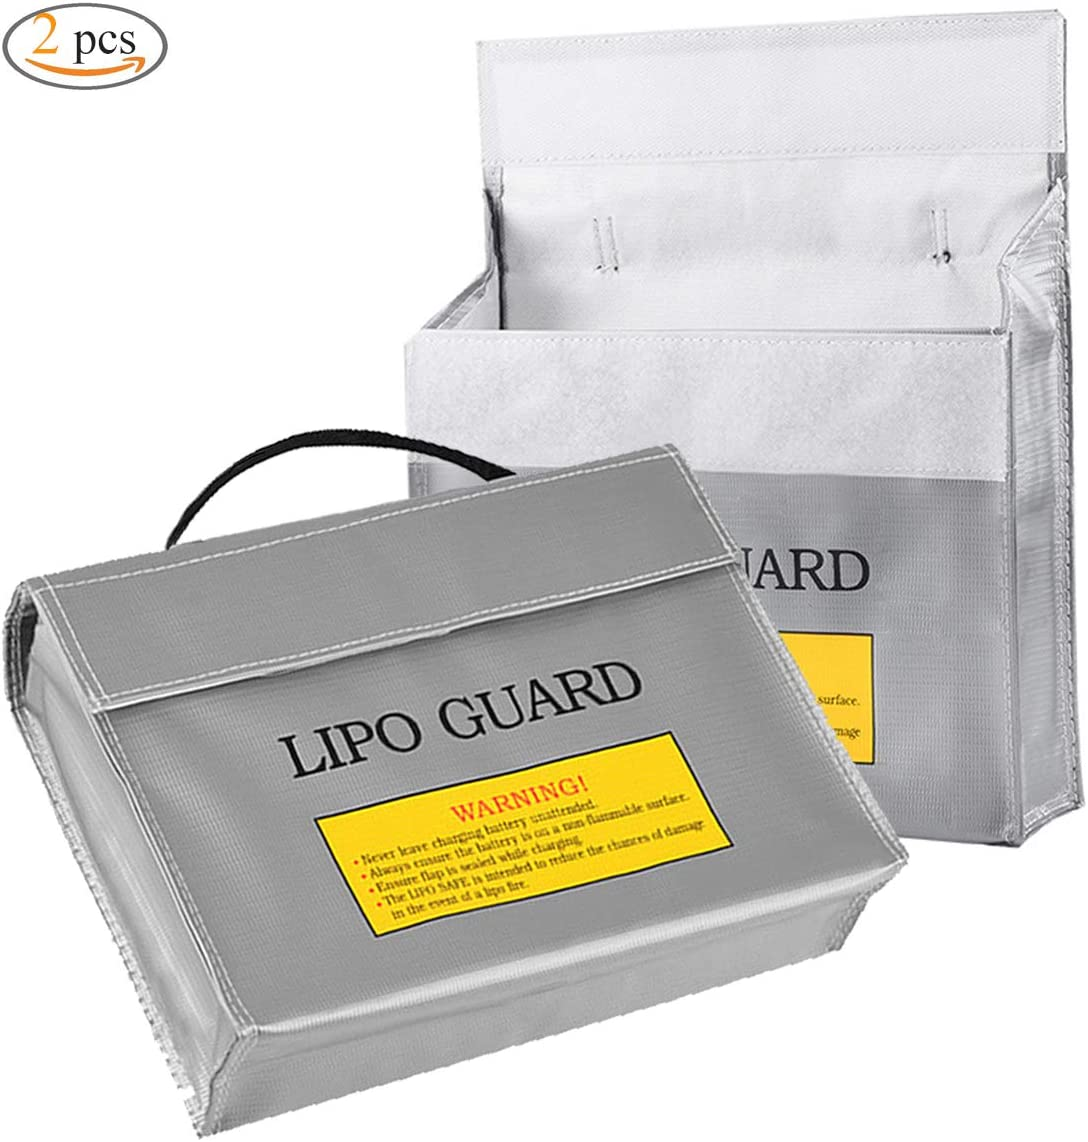 Lipo Battery Guard Bag,Xiuyer 2 Pcs Fireproof Explosionproof Lipo Safety Pouches Lithium Battery Bag for Charging Protection Storage 240x65x180mm, Silver